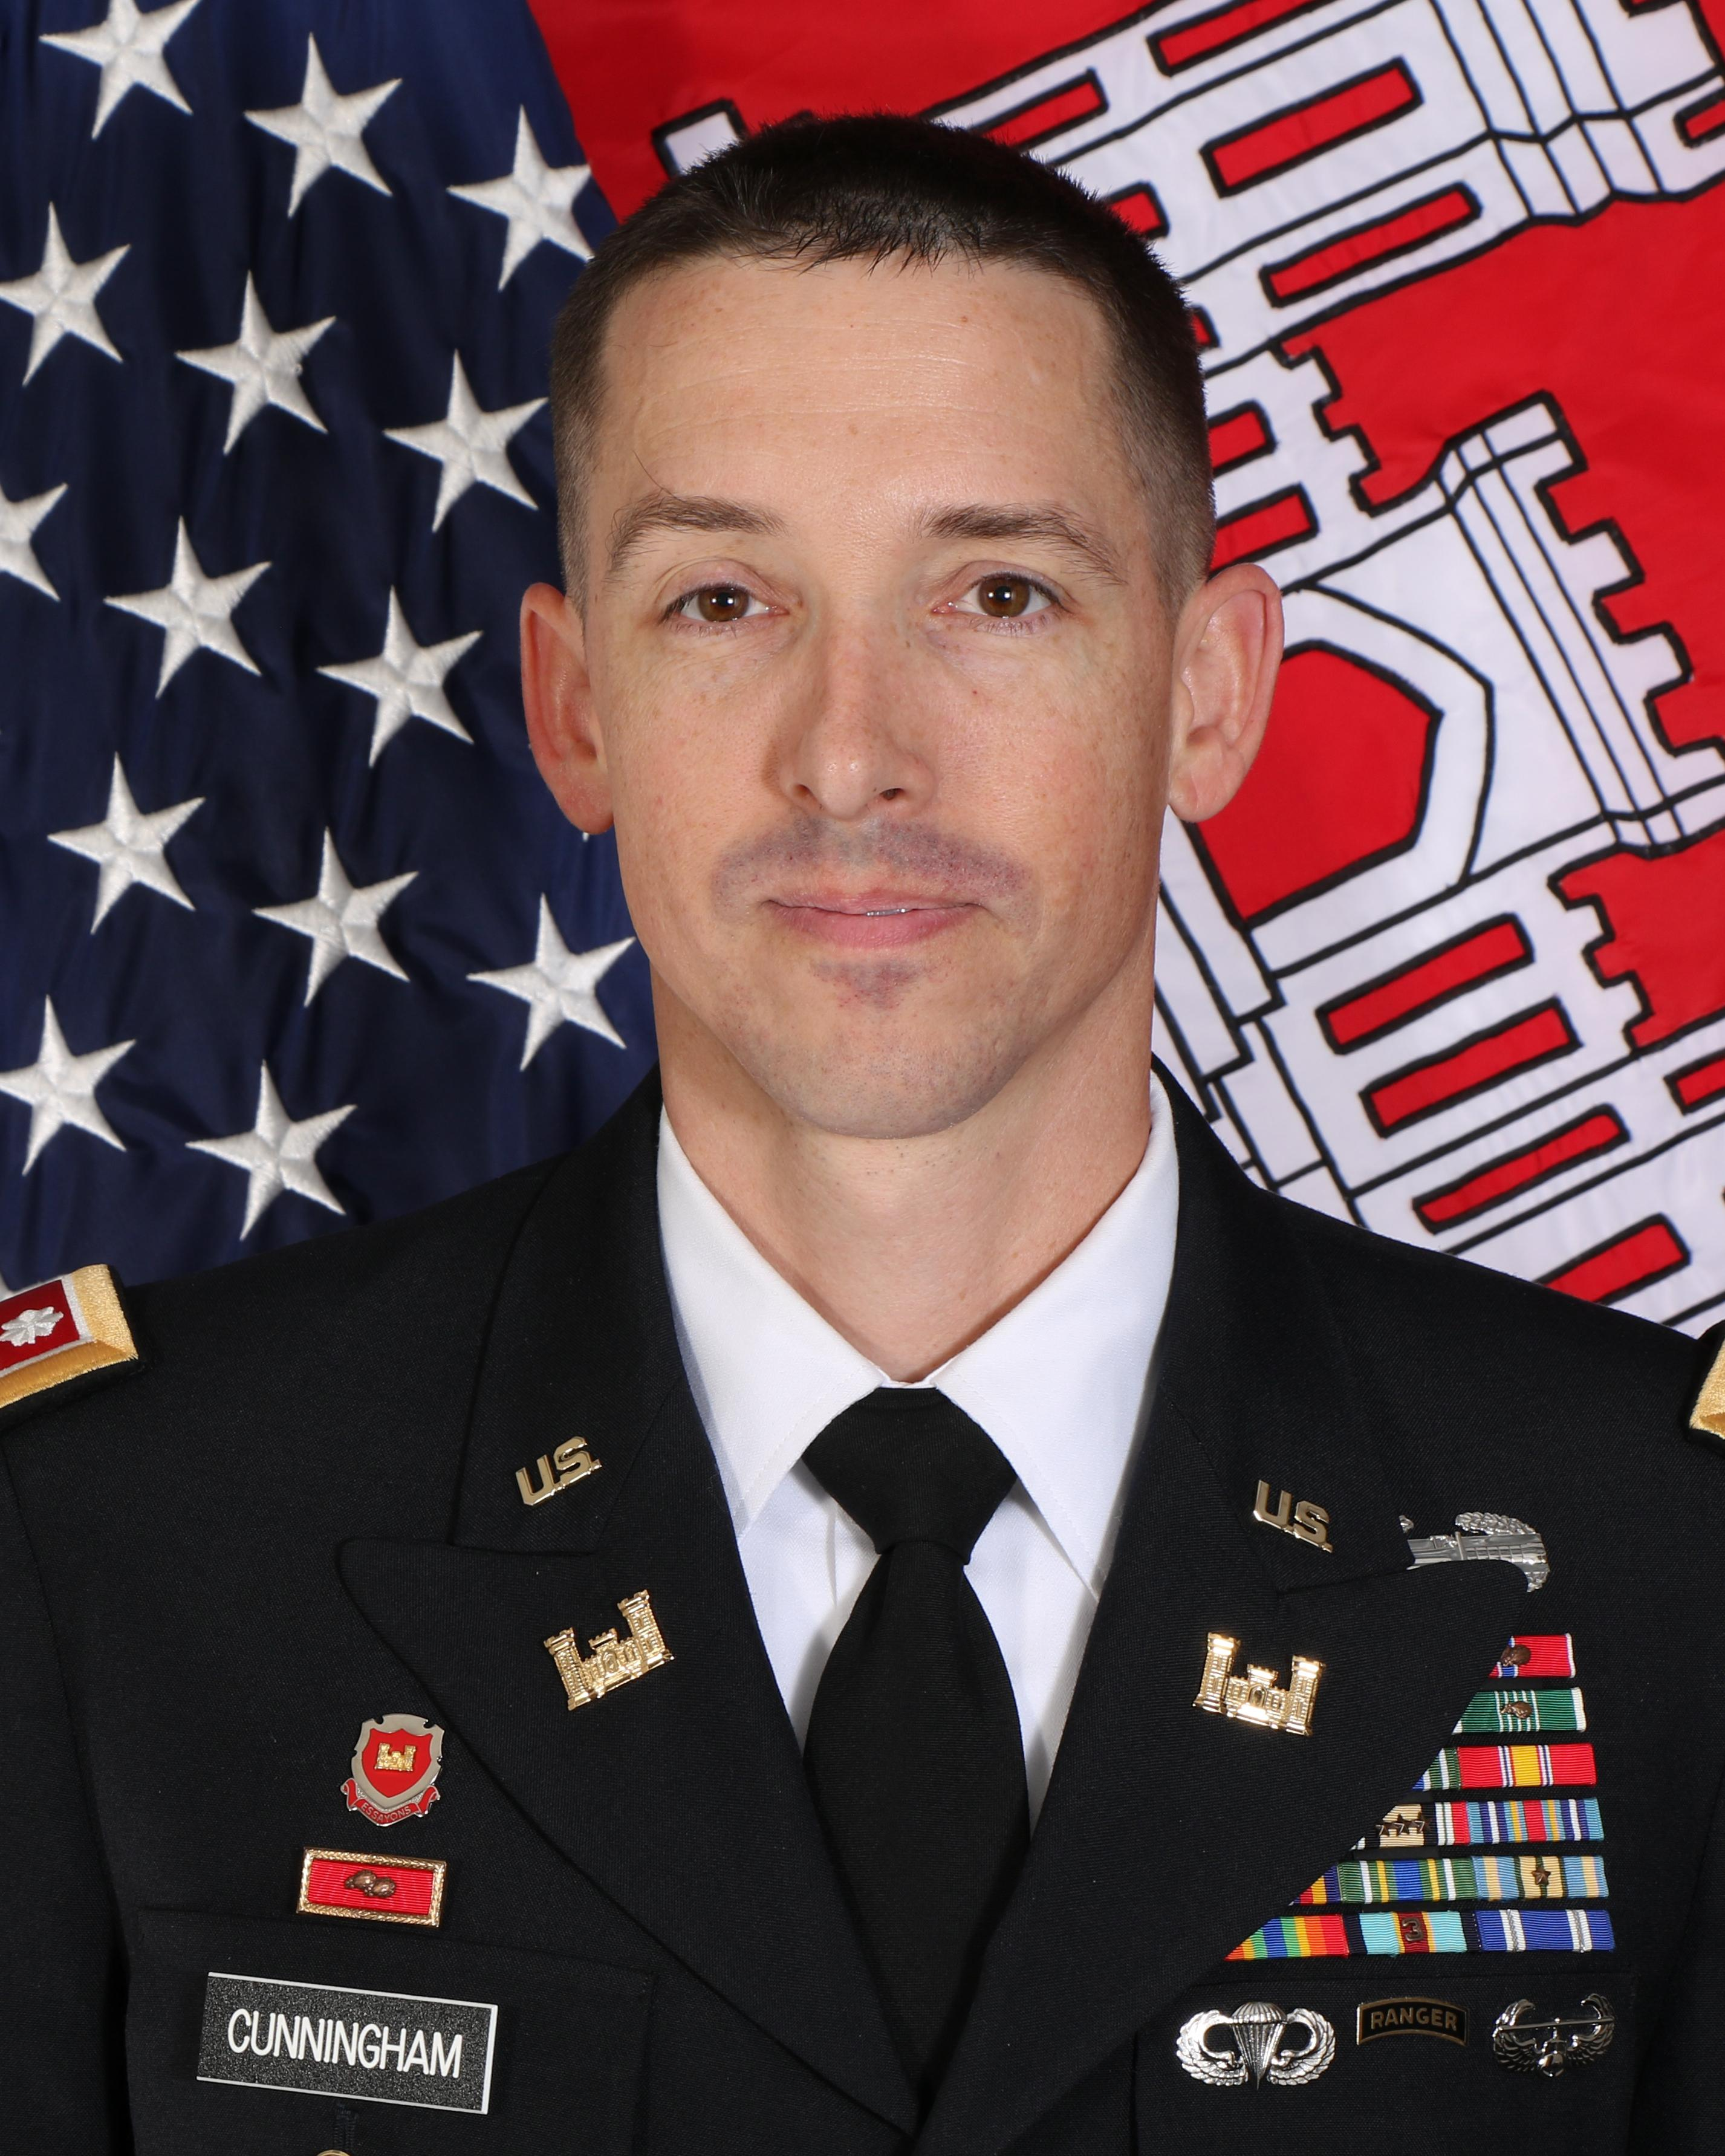 PCNC Welcomes US Army Corps' LTC John Cunningham